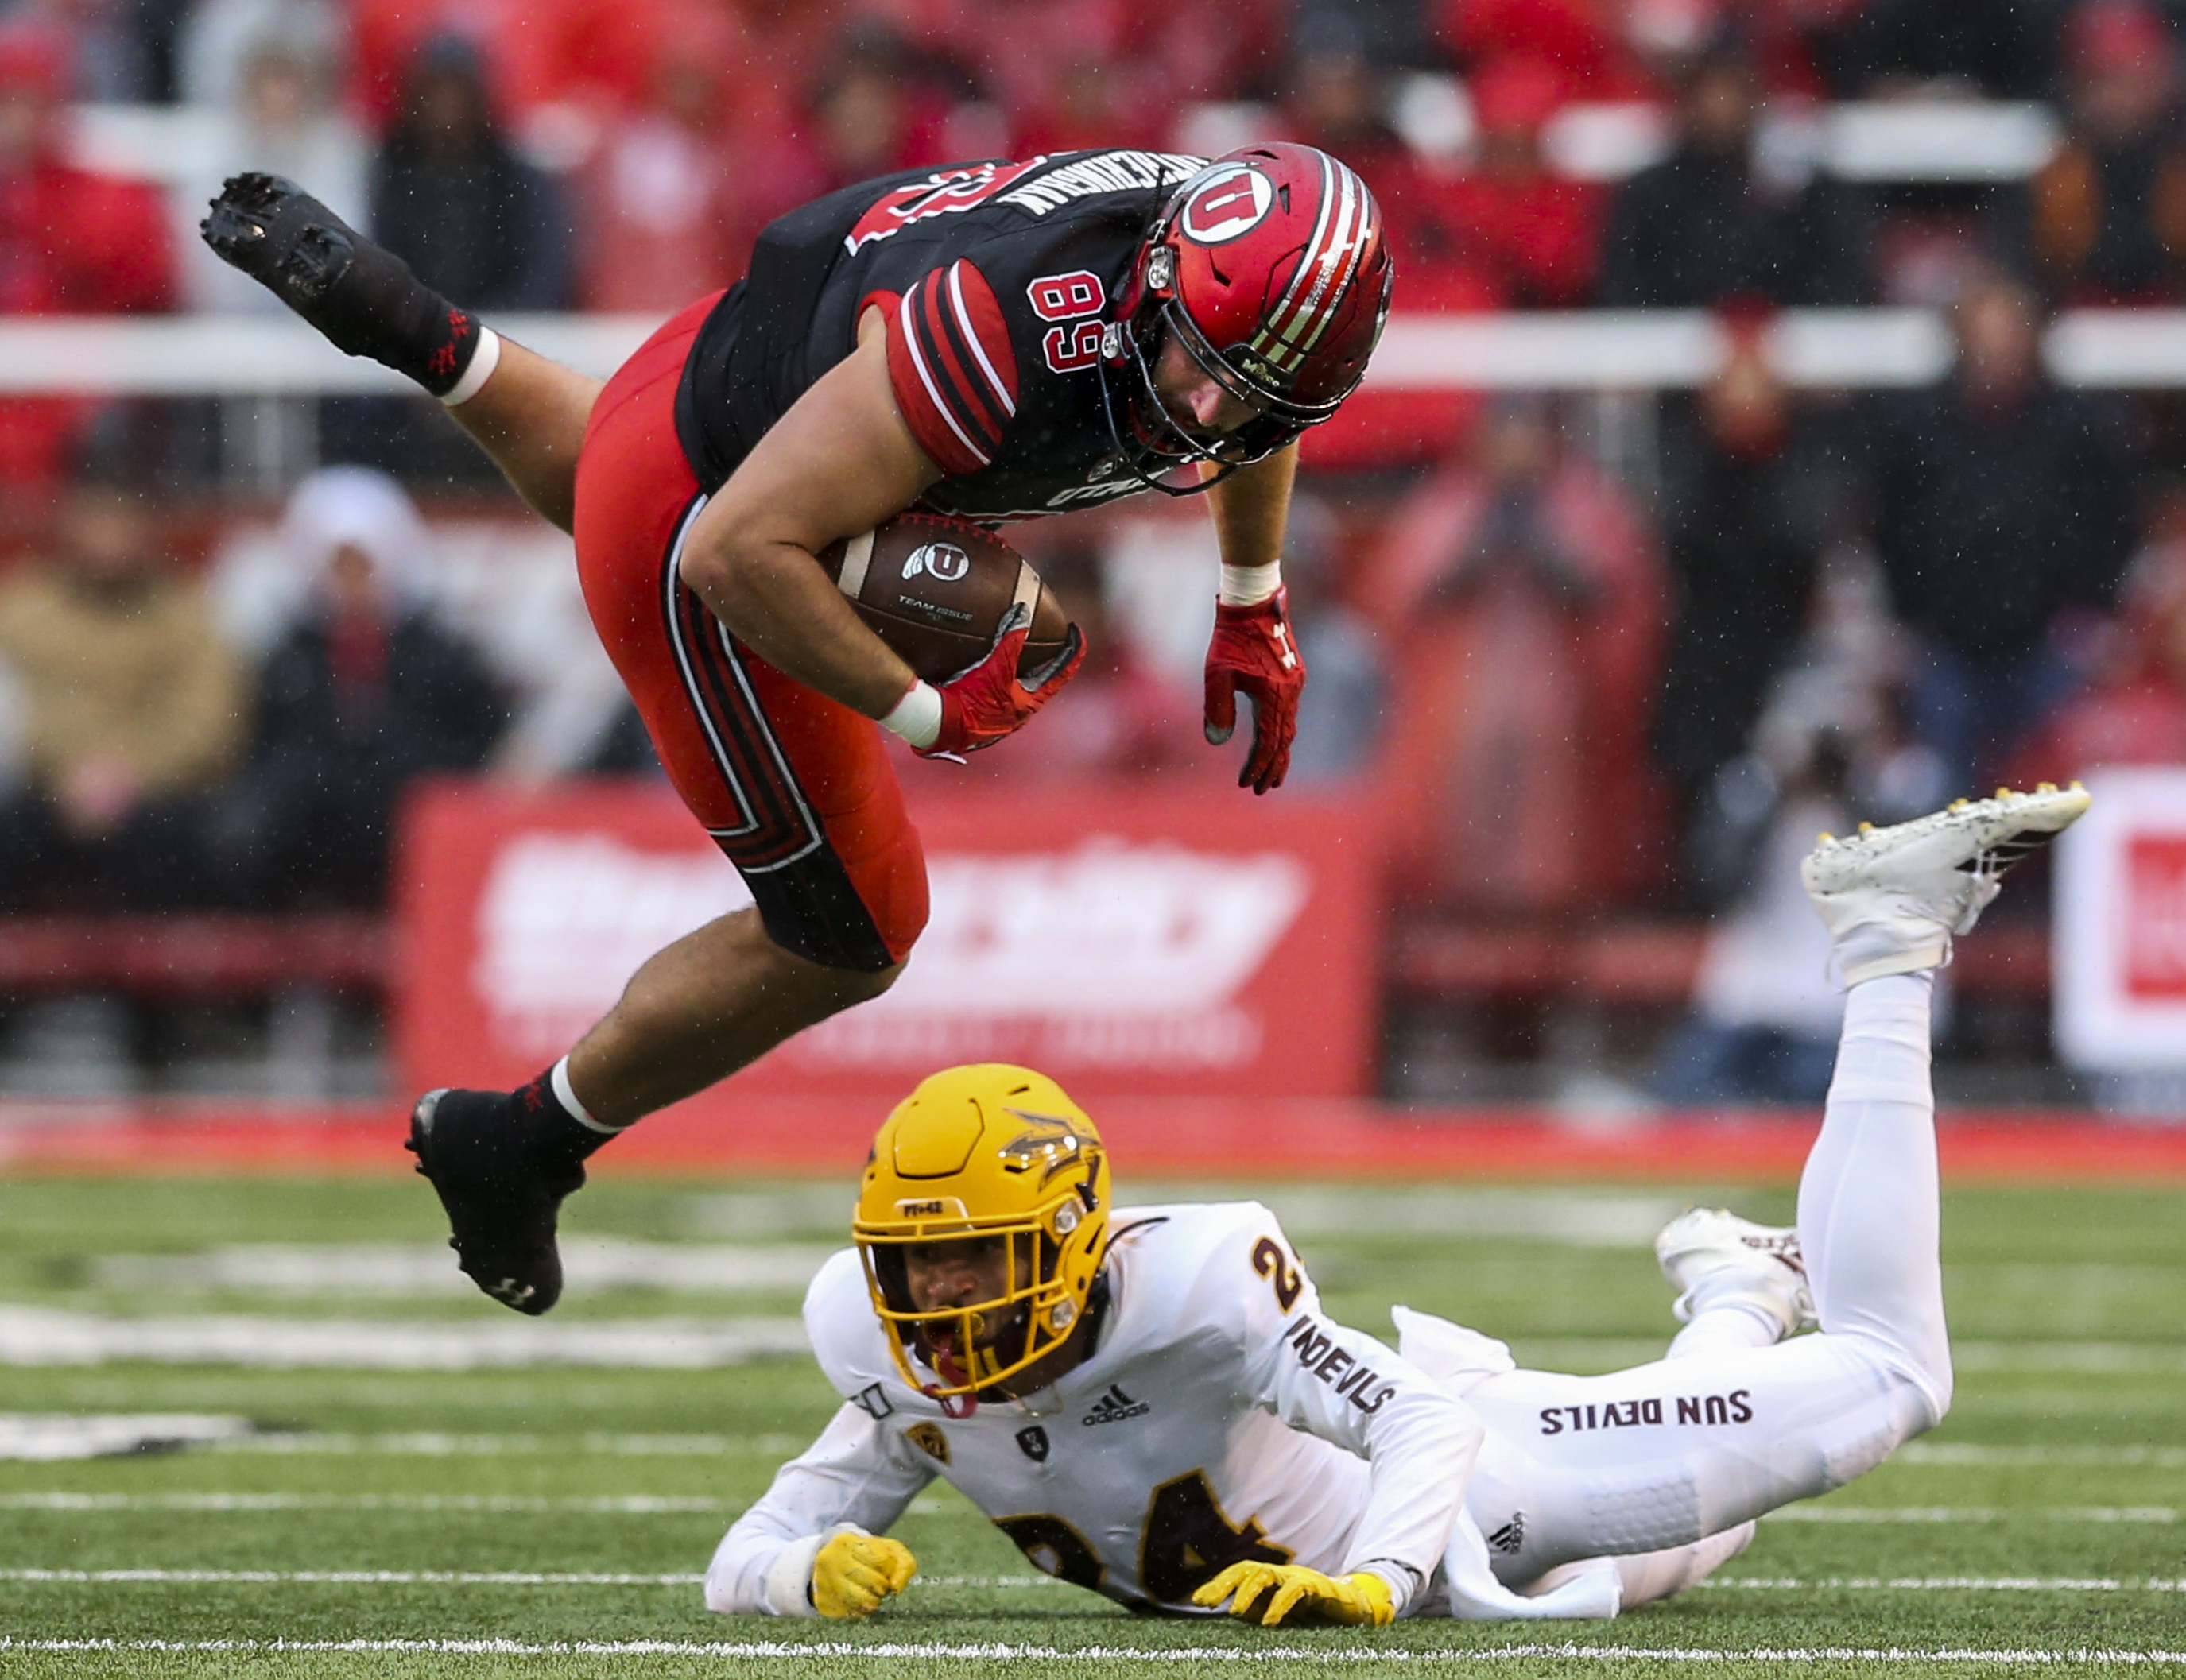 Utah Utes tight end Cole Fotheringham (89) is flipped through the air by Arizona State Sun Devils defensive back Chase Lucas (24) during the first half of an NCAA football game at Rice-Eccles Stadium in Salt Lake City on Saturday, Oct. 19, 2019.